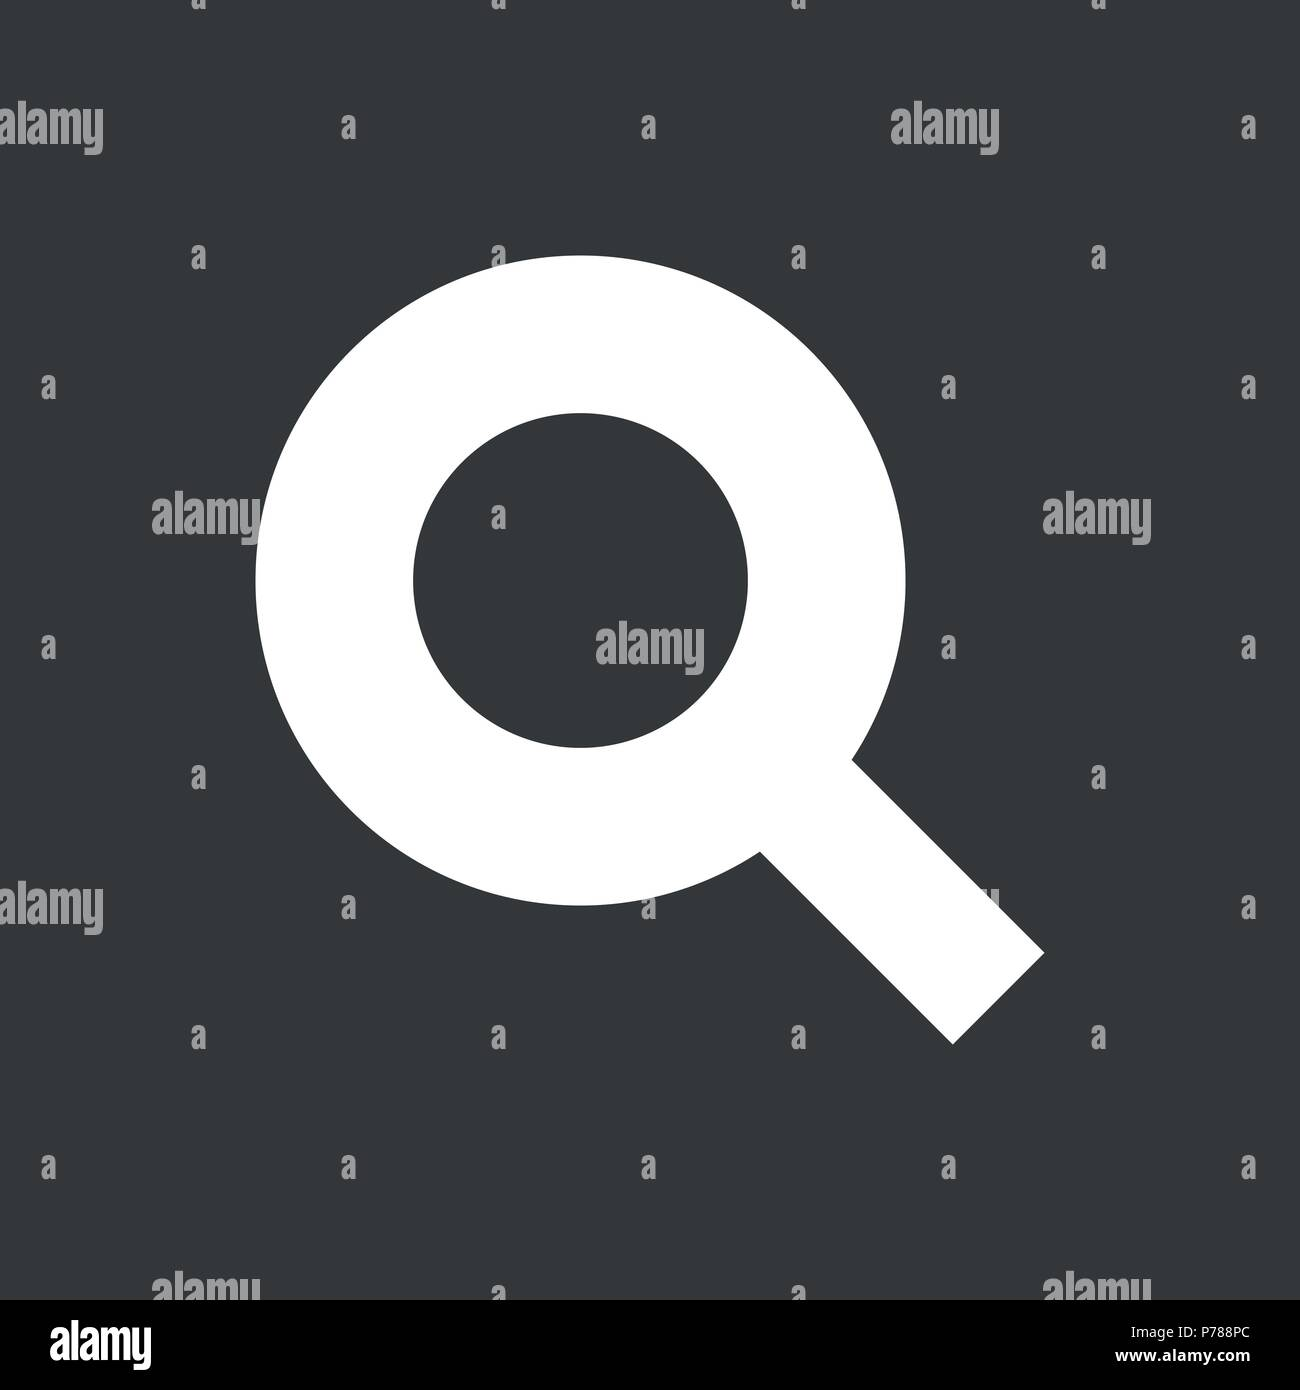 Search icon isolated on black background - vector iconic design. - Stock Image